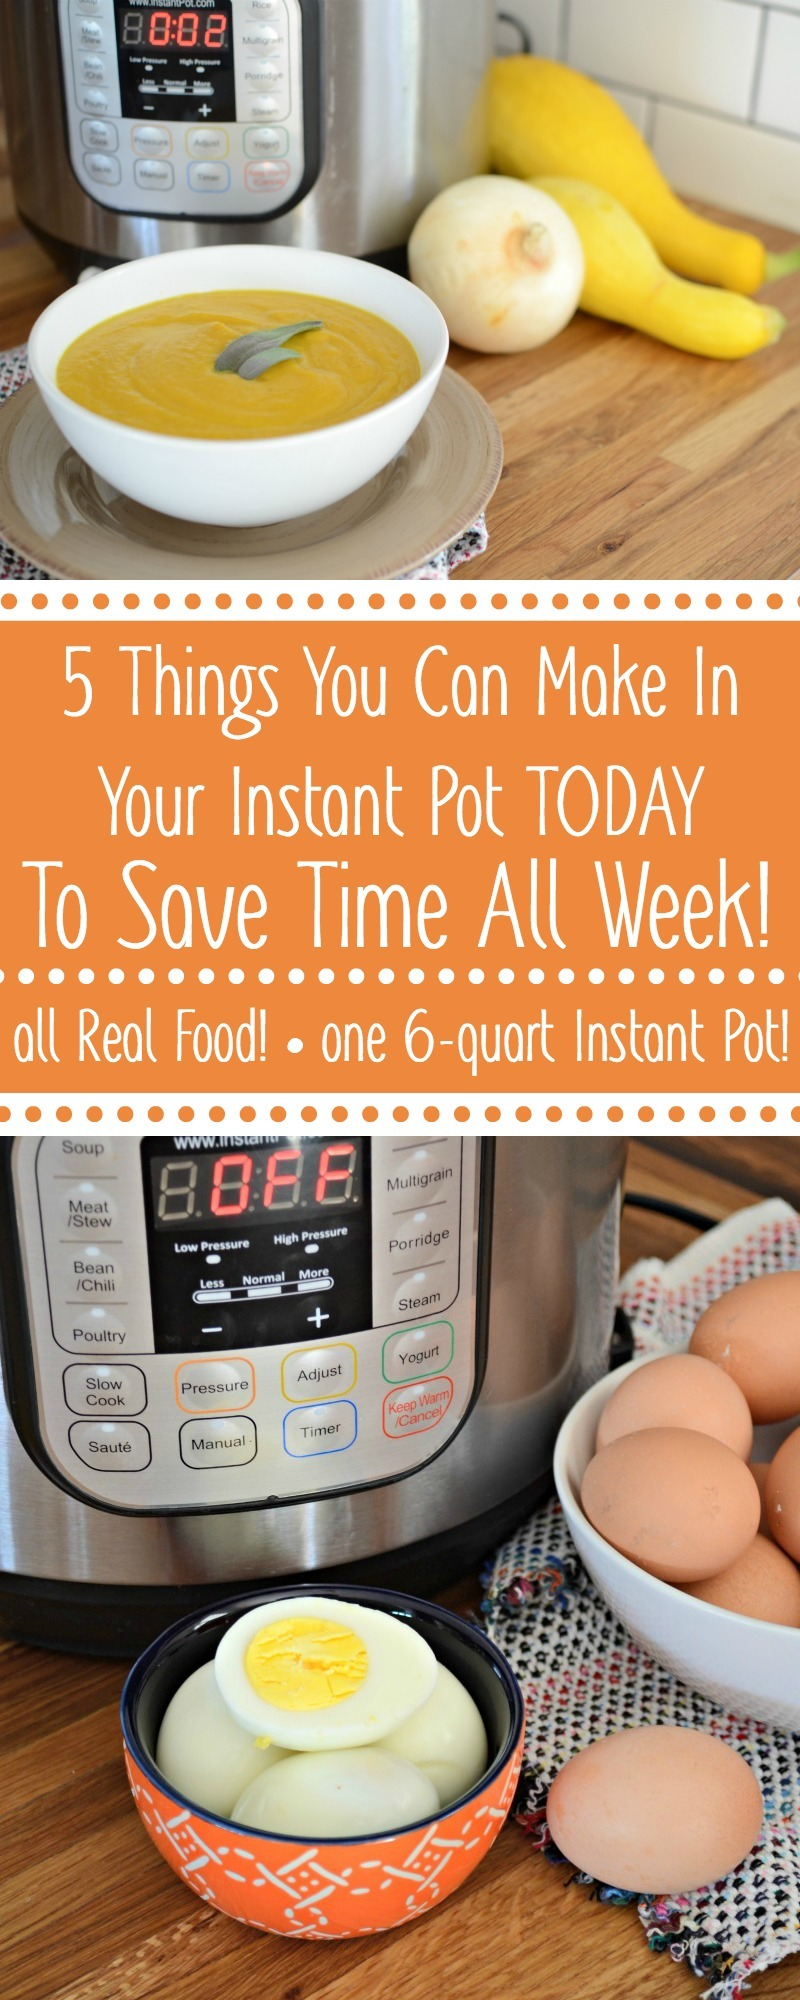 instant pot with blended soup and hardboiled eggs